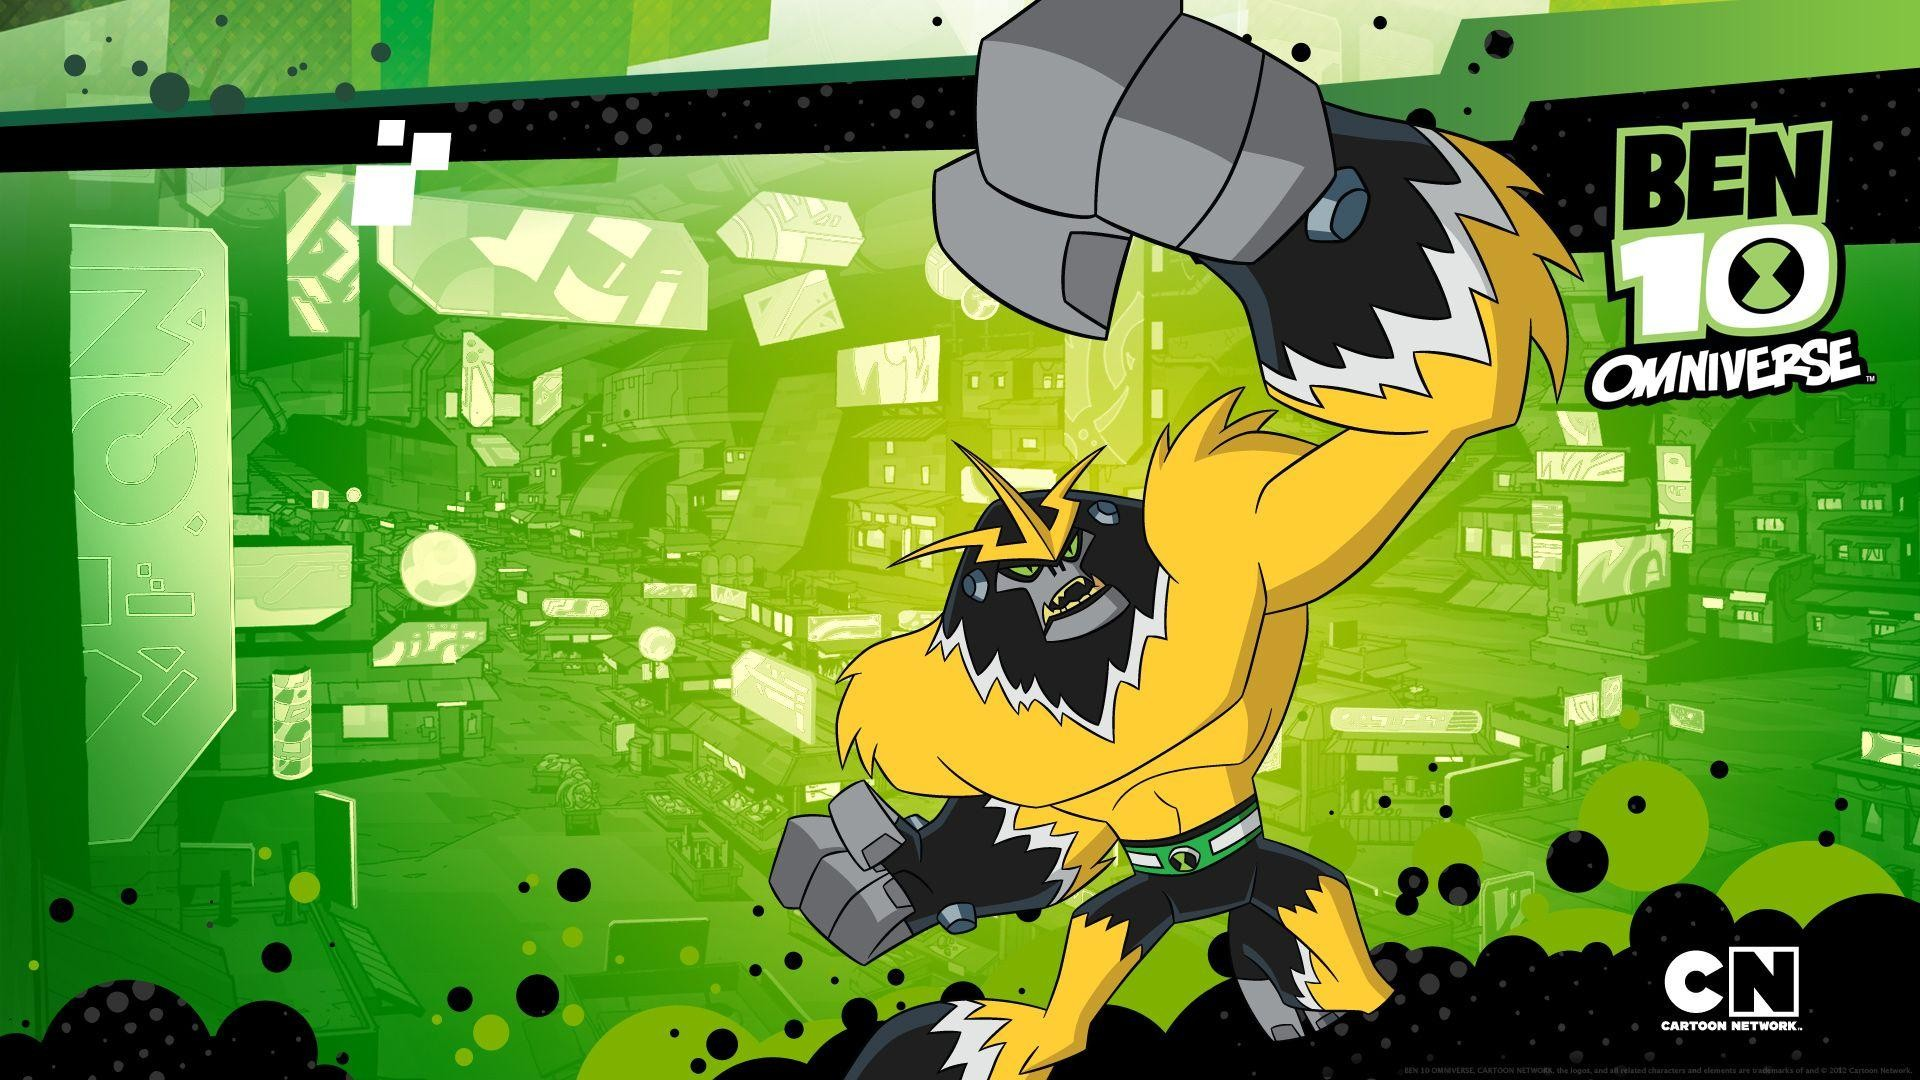 Ben 10 wallpapers 1920x1080 hd ben 10 wallpapers hd wallpapers backgrounds of your choice voltagebd Choice Image